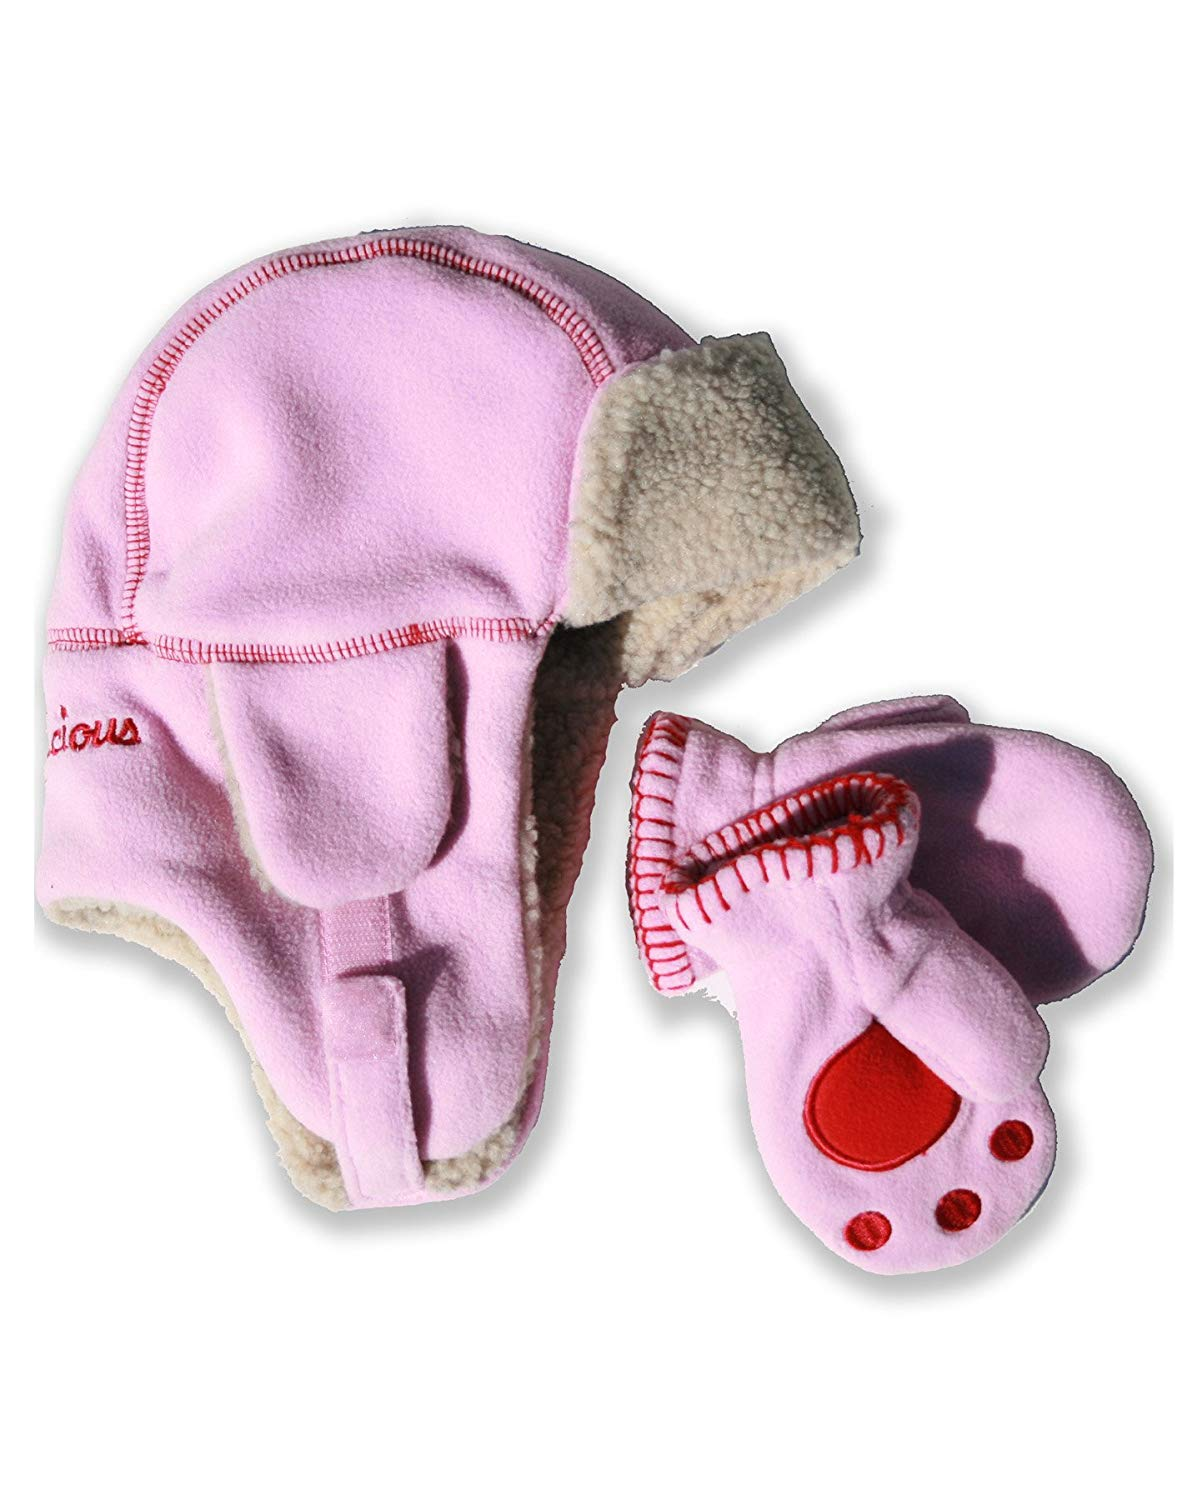 8de6034fef1 Get Quotations · Critterlicious Polar Fleece Children s Bomber style hat  and Mitten Set